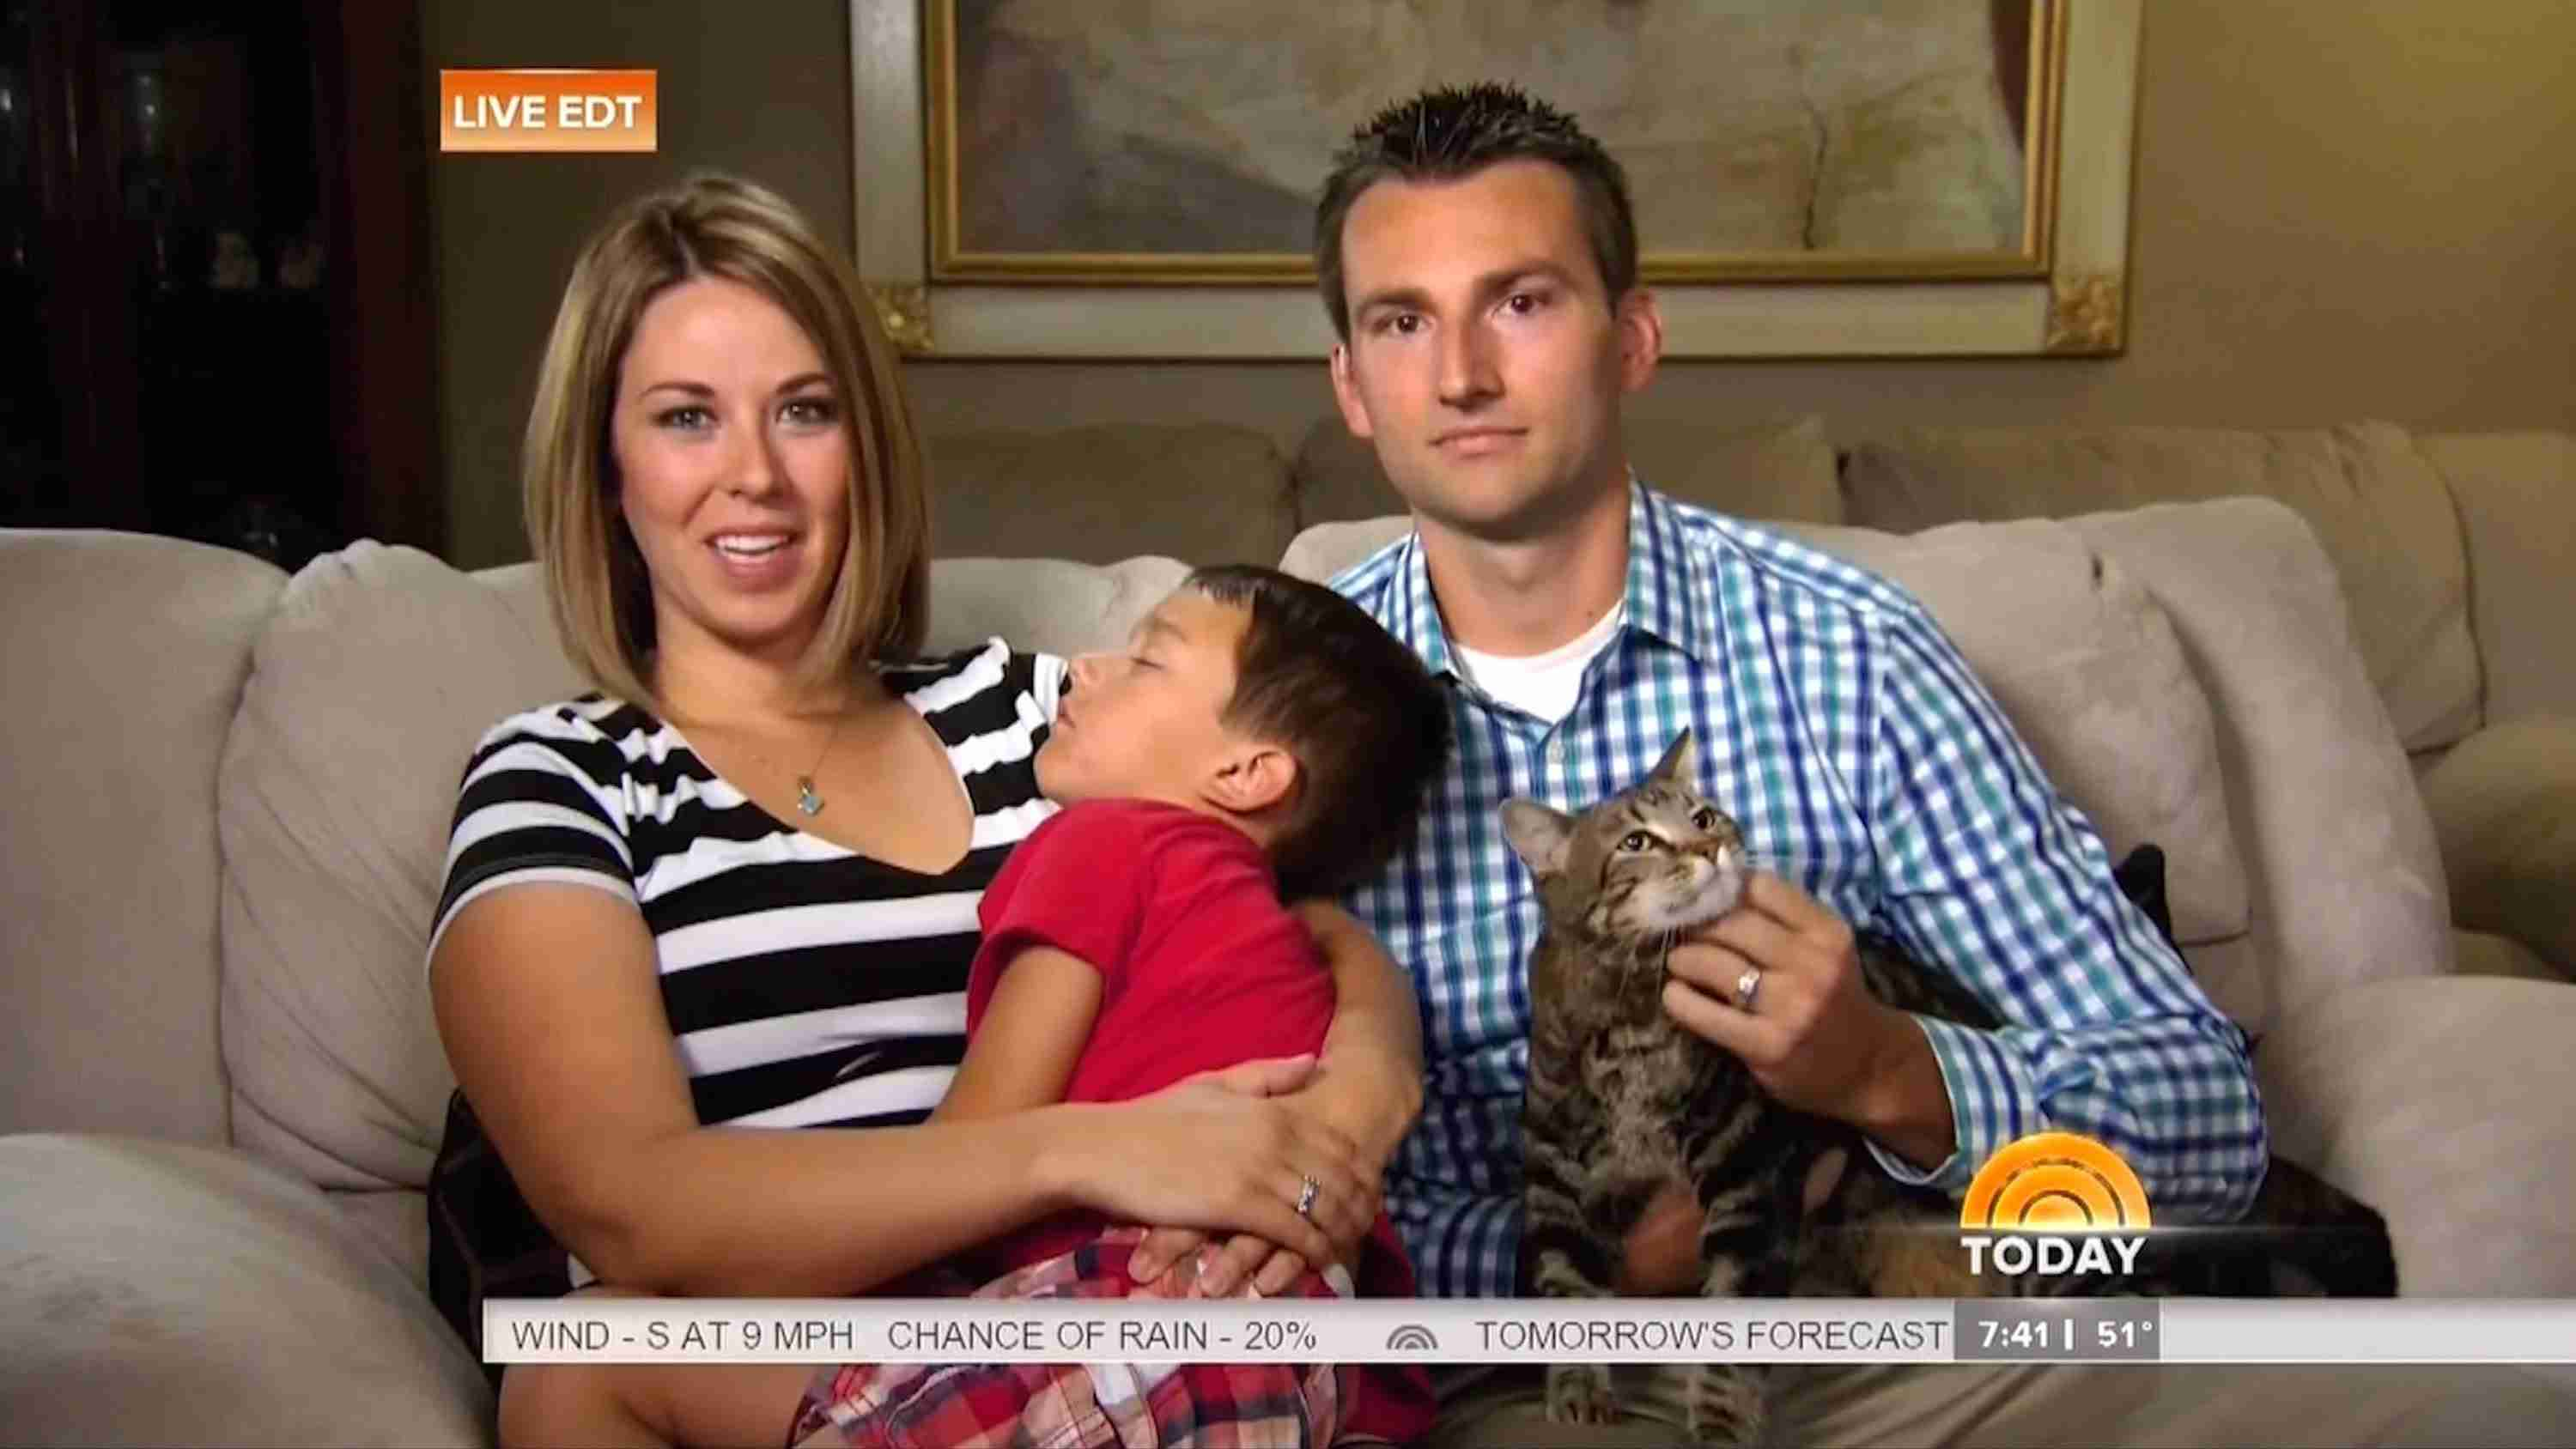 Hero House Cat Saves Boy From Dog Attack - Today Show - May 15 2014 - YouTube